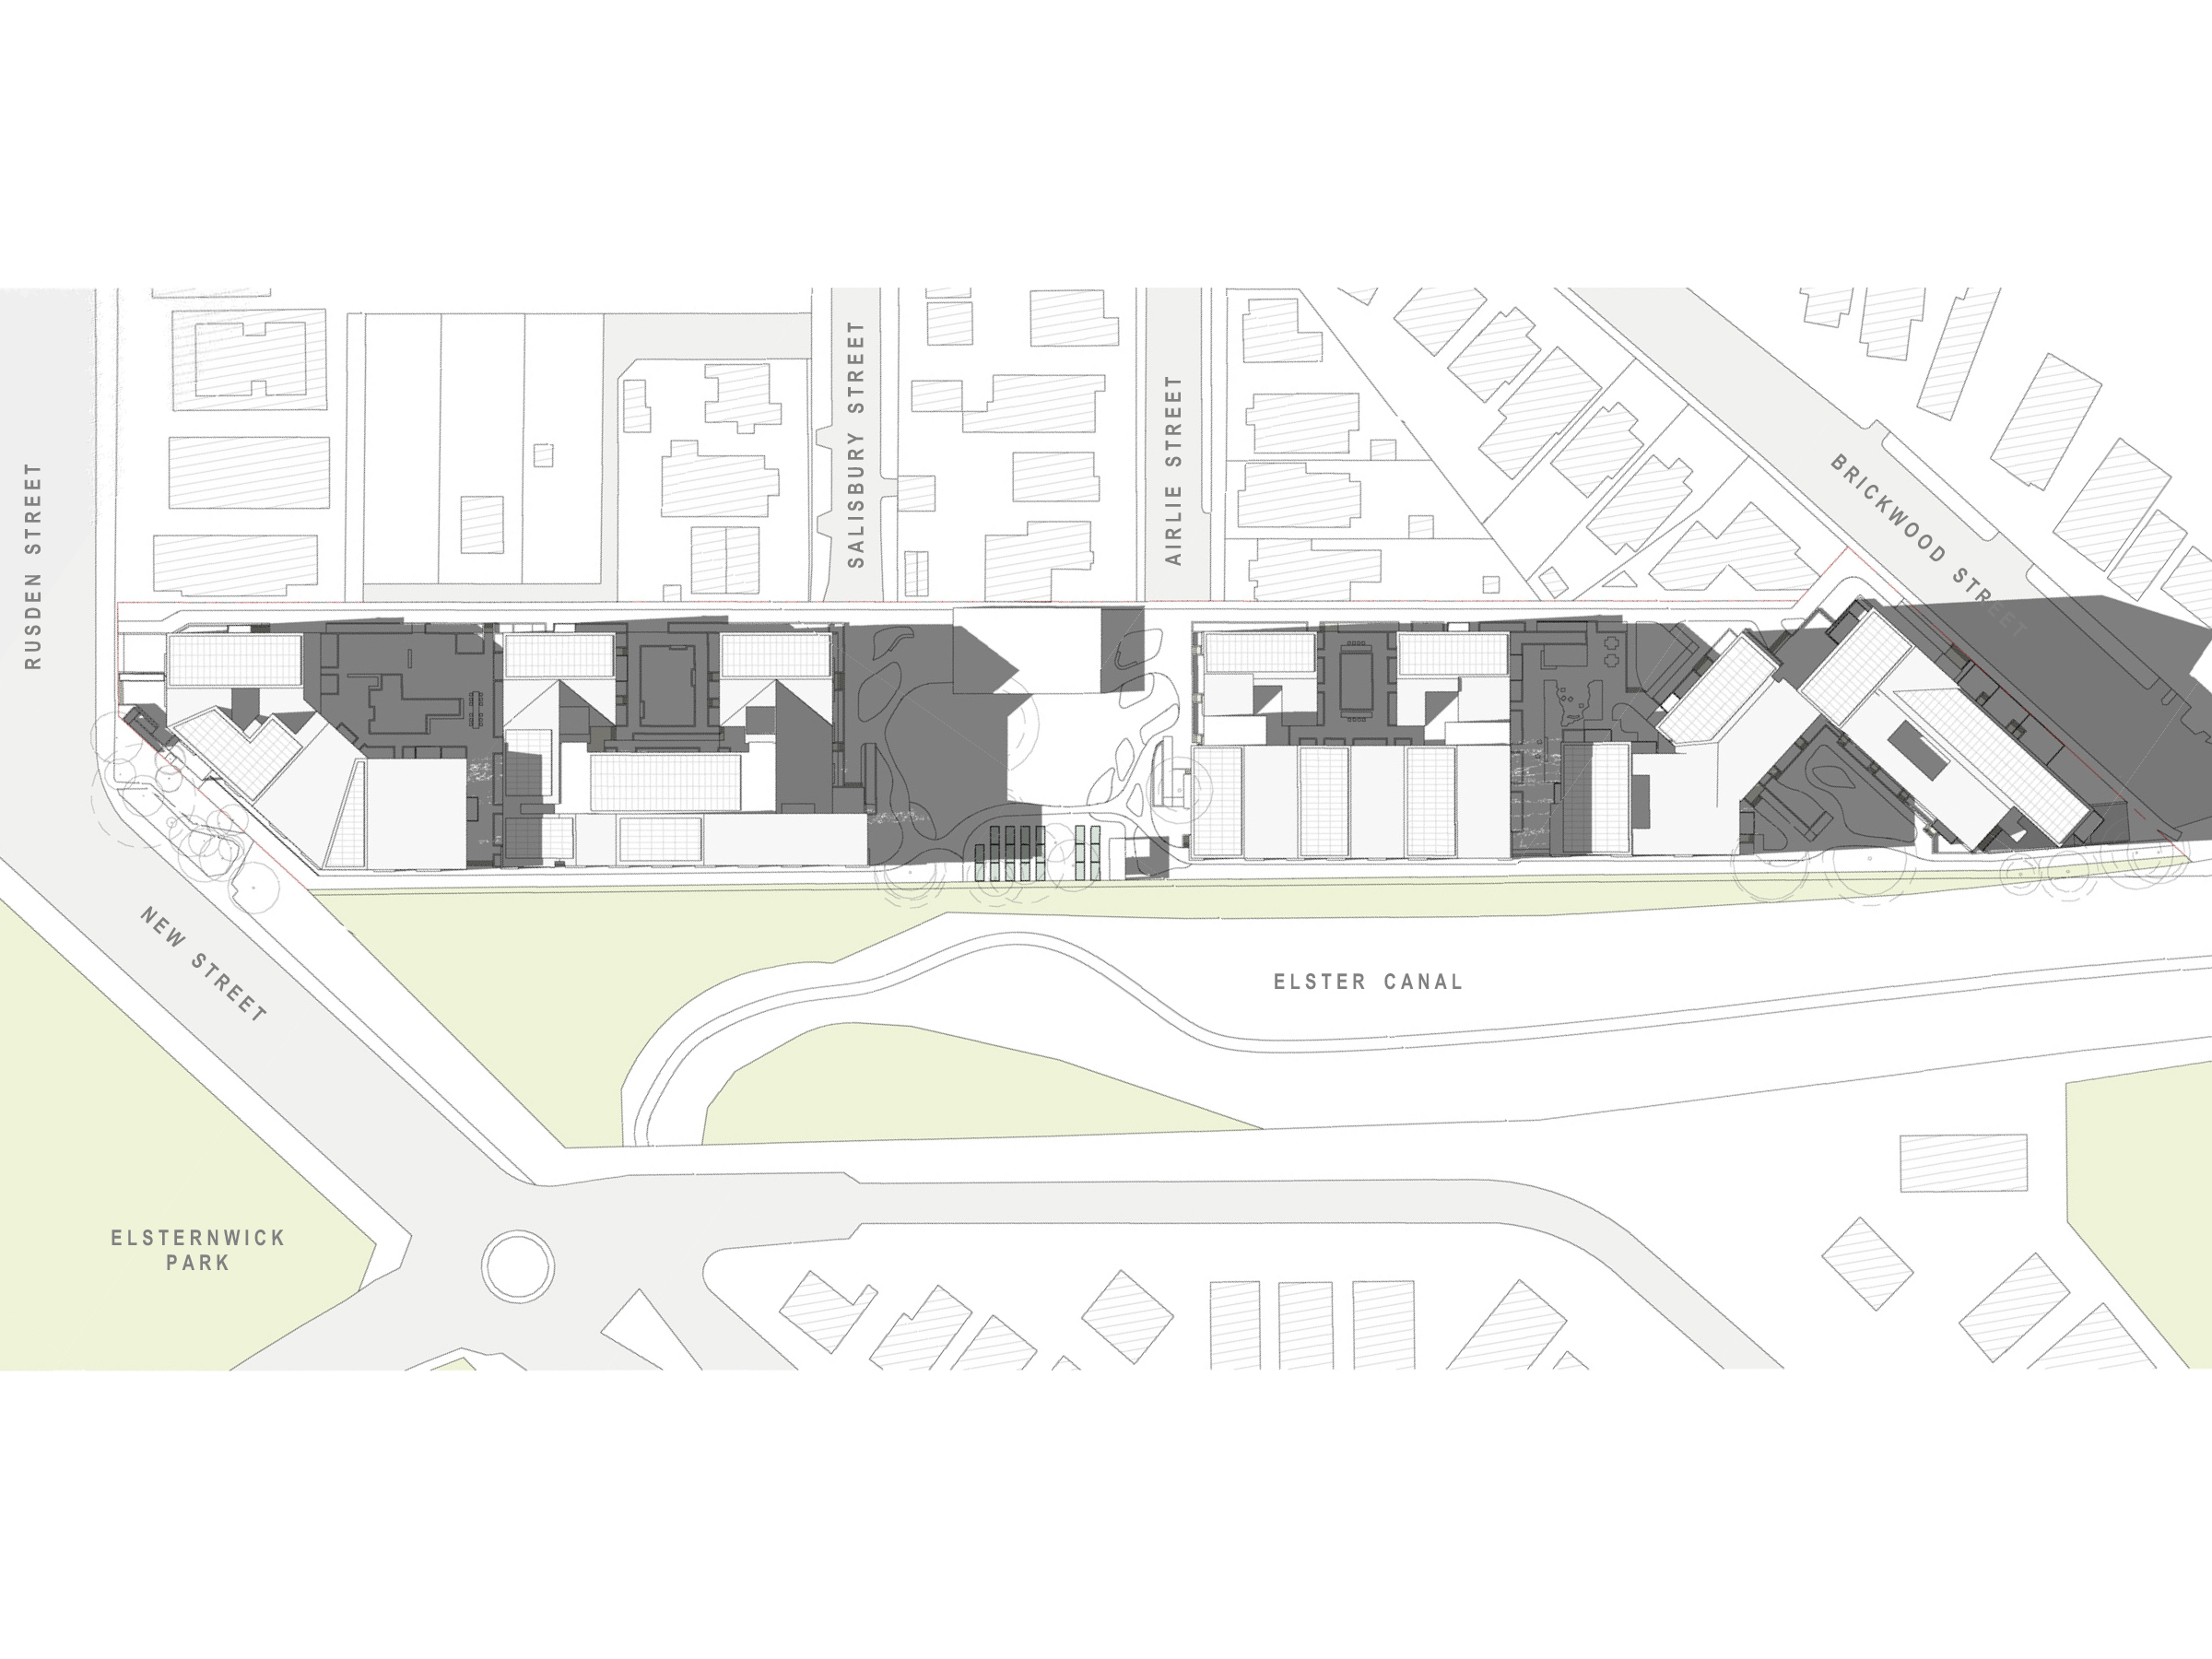 Diagram showing the shadows created by the new development in June at 3pm